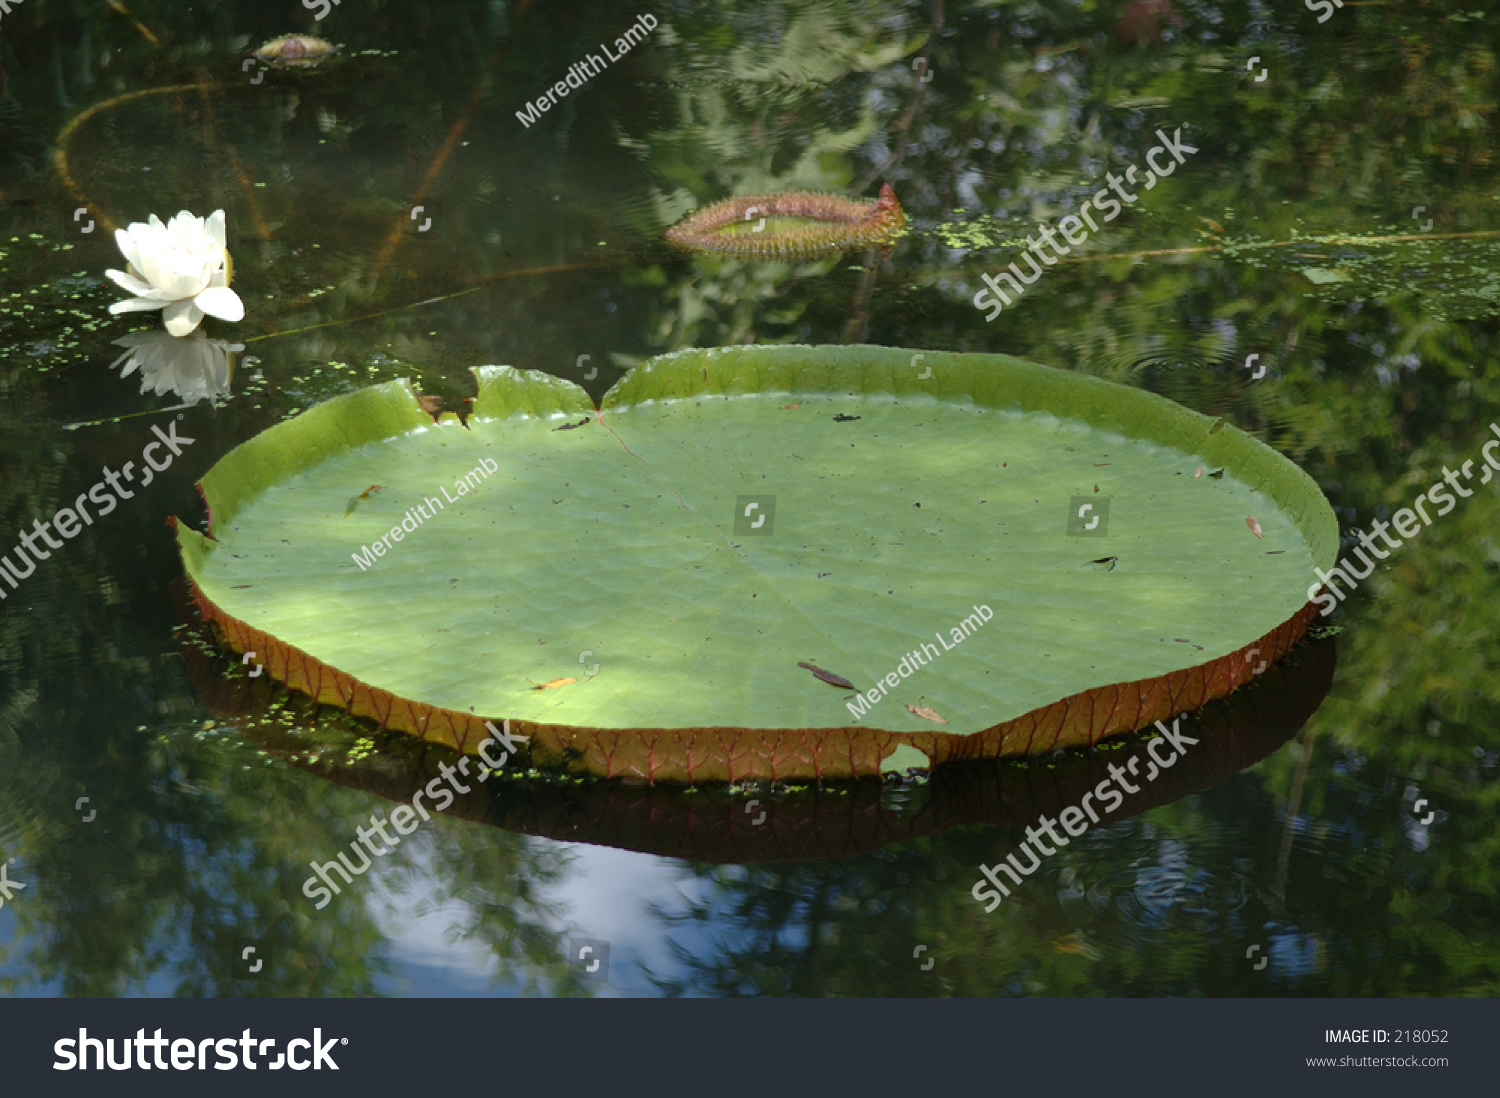 Giant amazon lily pad flower stock photo edit now 218052 giant amazon lily pad with flower izmirmasajfo